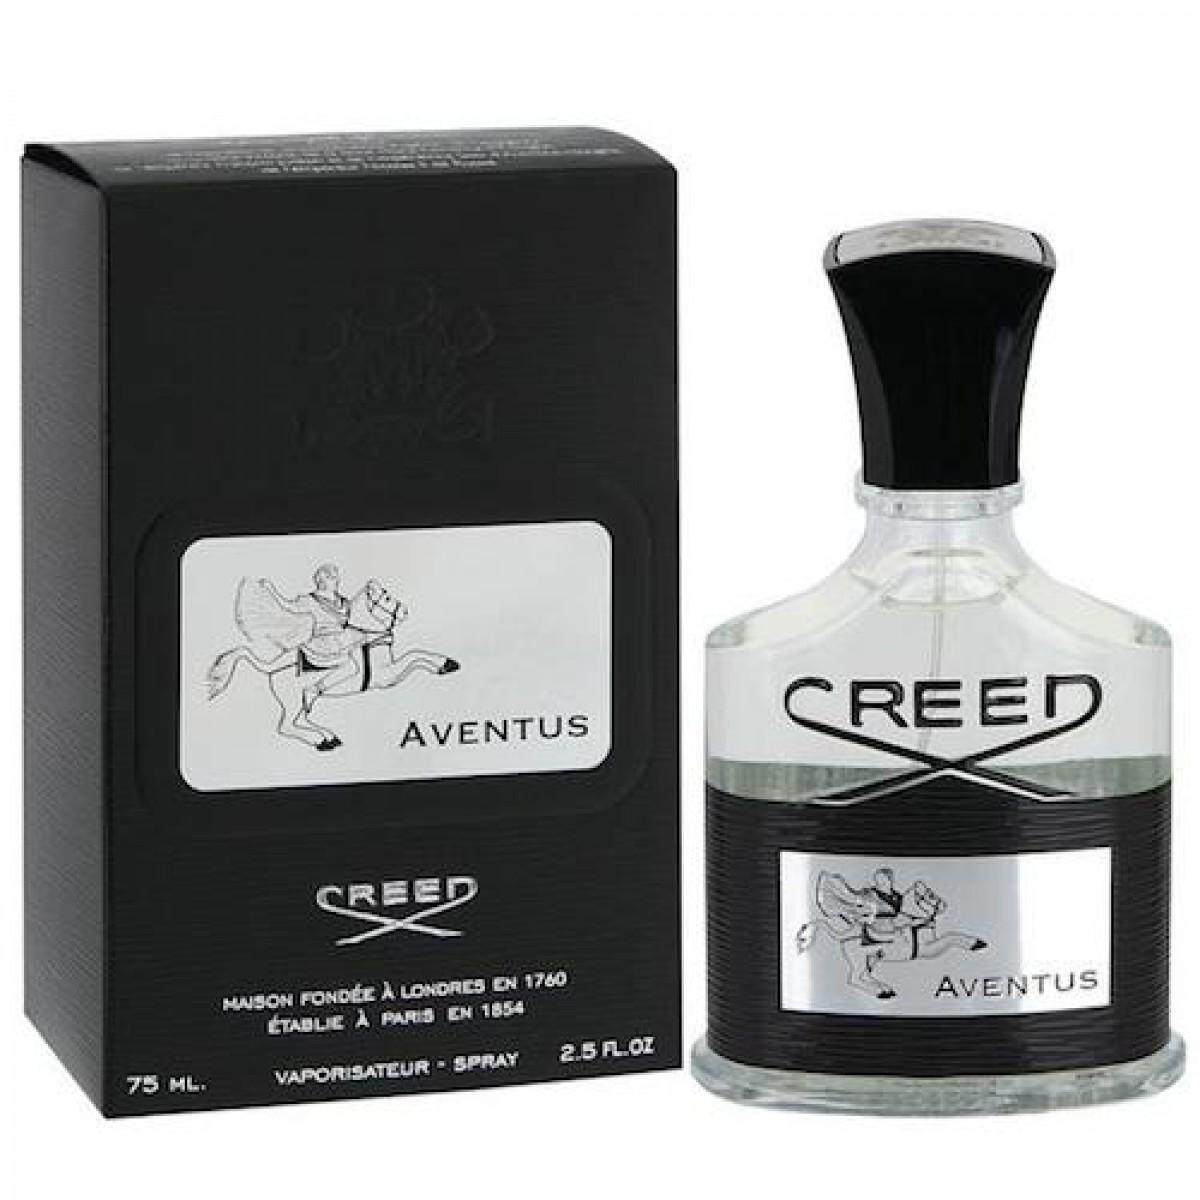 Creed Buy Creed At Best Price In Malaysia Wwwlazadacommy